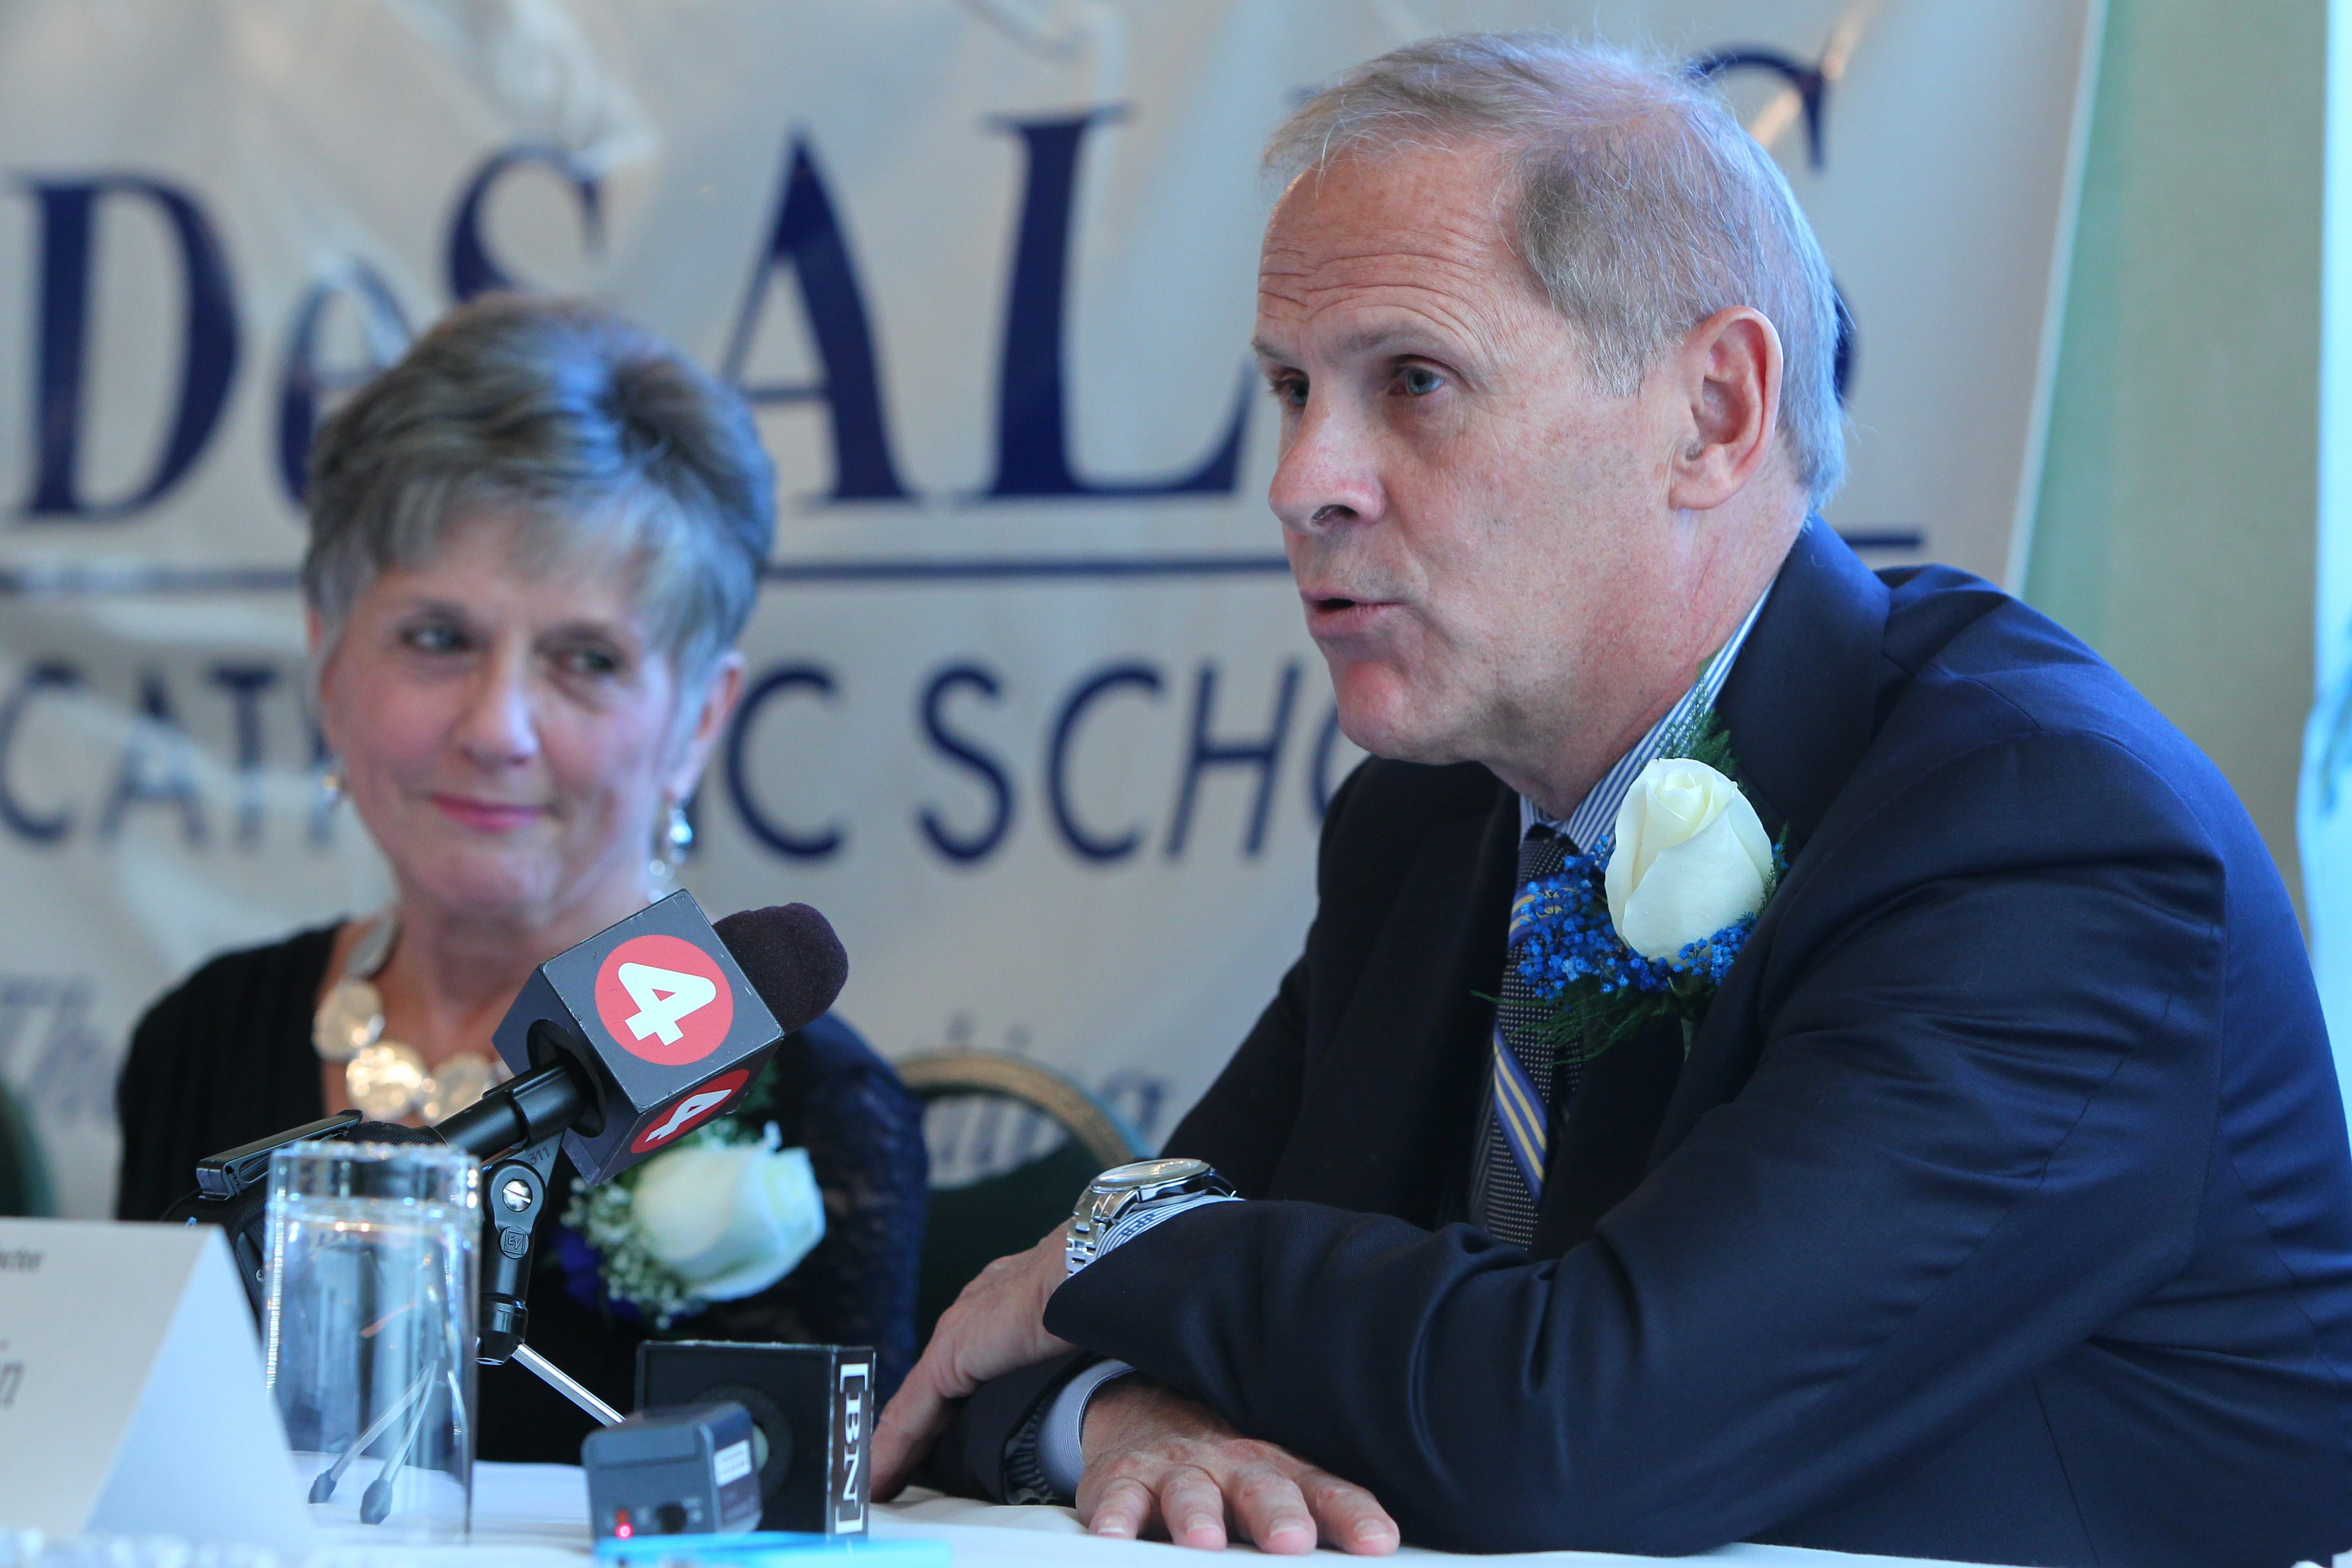 Michigan men's basketball coach John Beilein speaks to the media with others after being inducted into the DeSales Hall of Fame.